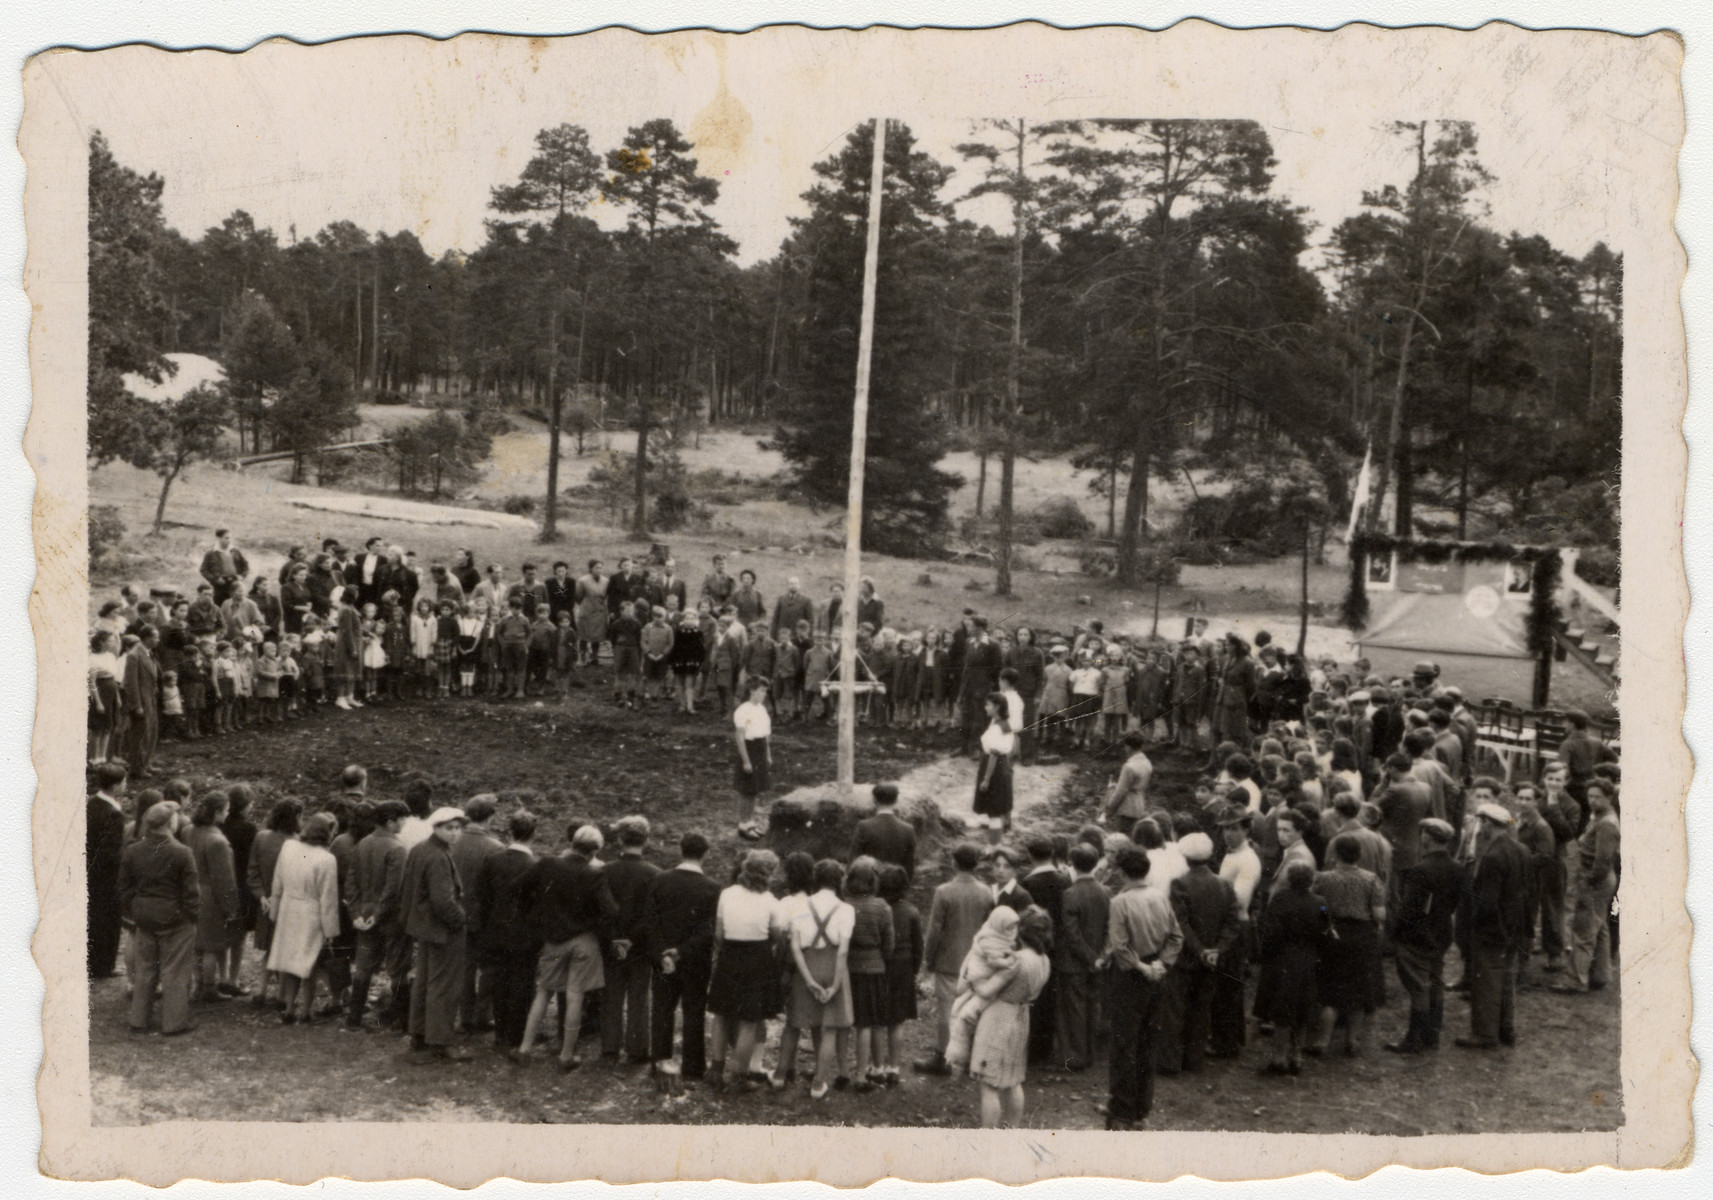 Tarbut School students in the Foehrenwald D.P. camp gather in a circle around a flag pole, celebrating the new year.